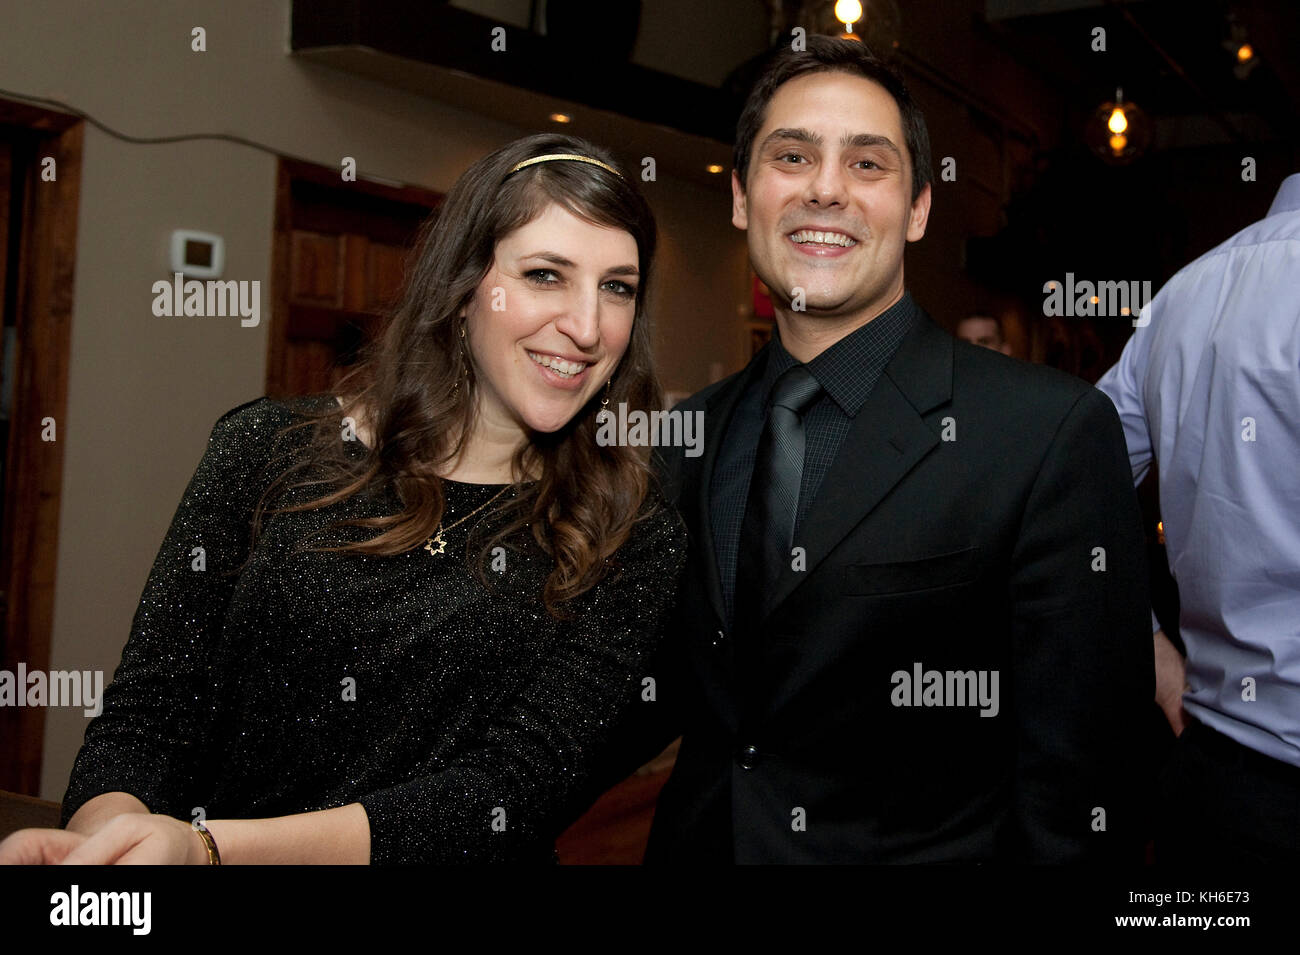 Mayim Bialik with her book publicist at the launch party for her new book, 'Beyond The Sling' at Cafe Blossom - Stock Image